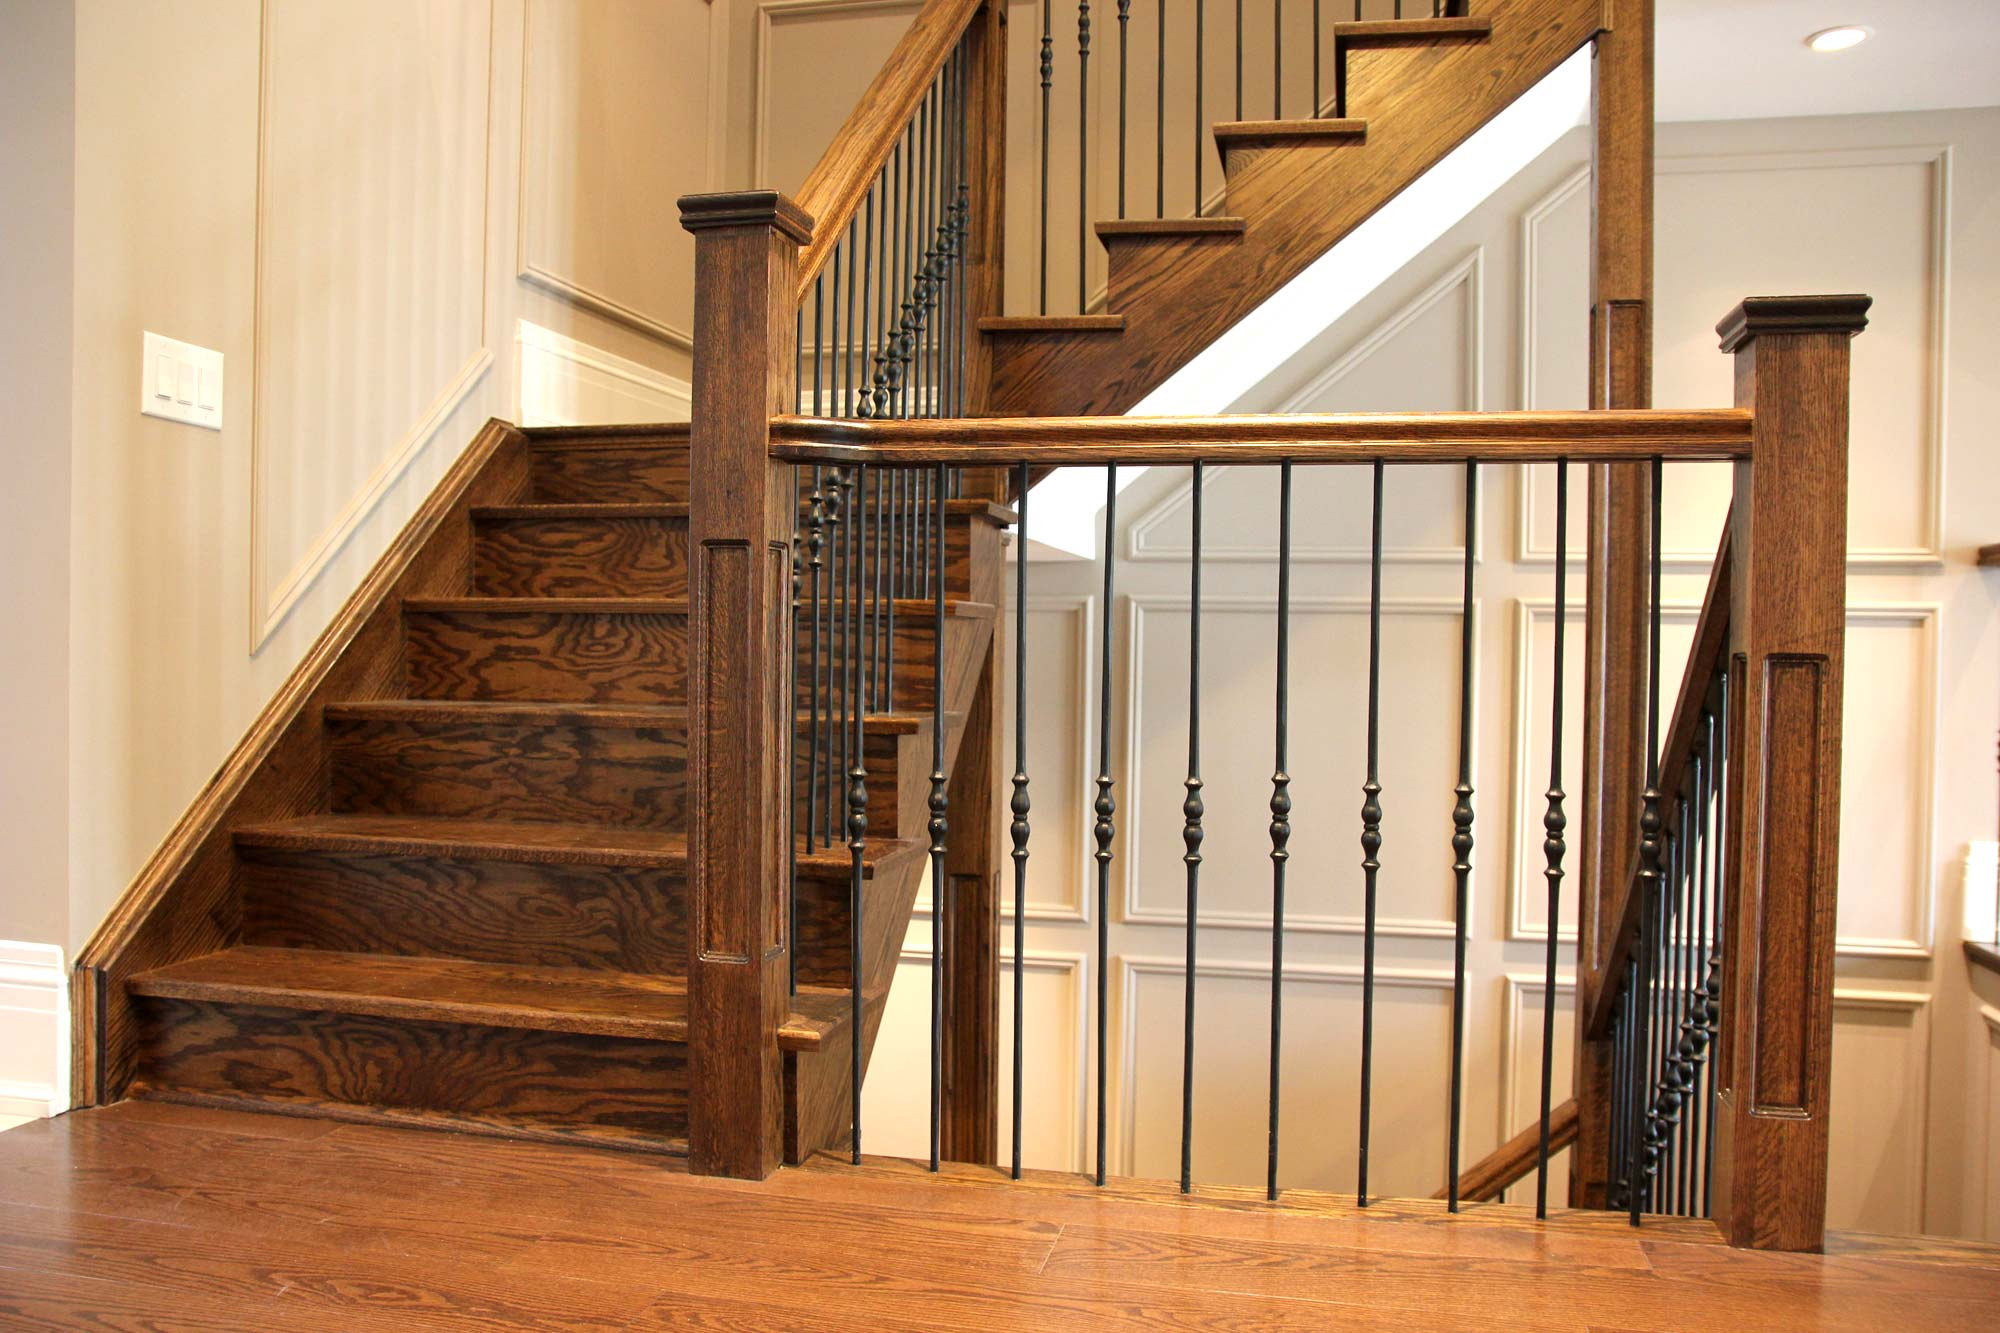 Interior Wrought Iron Railings